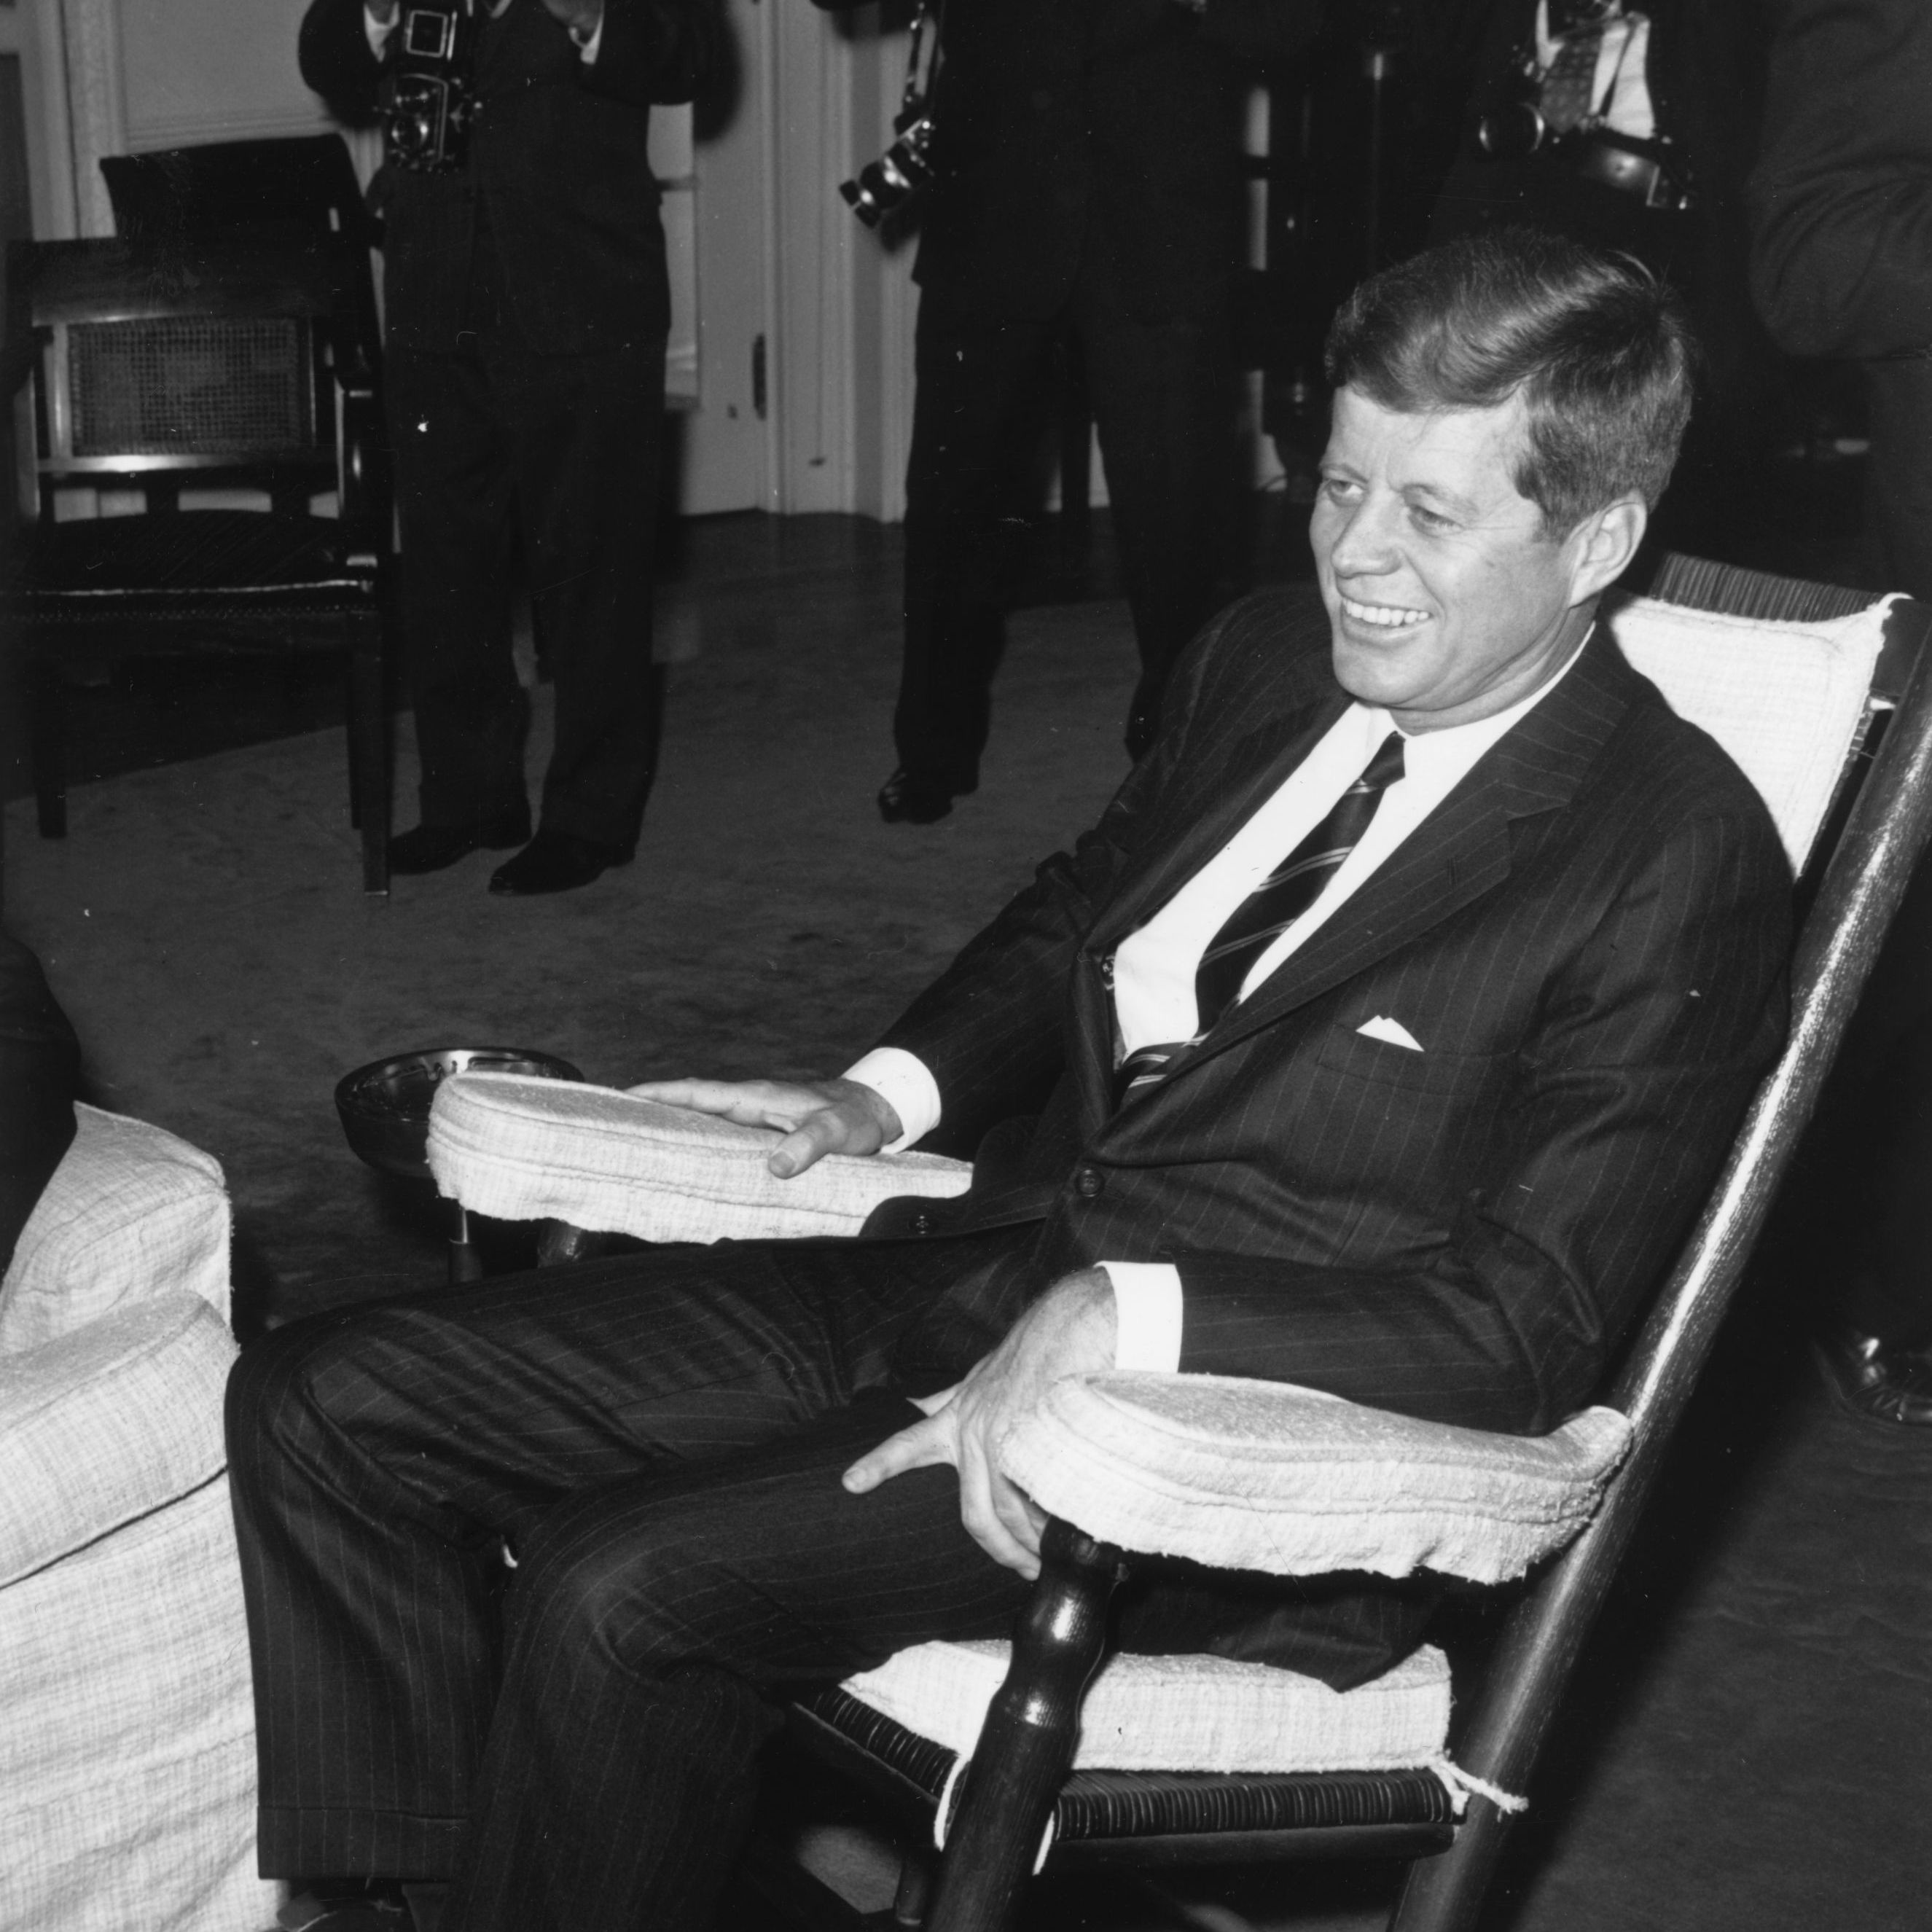 Kennedy in the White House in his favorite rocking chair, two days before he was assassinated in November 1963.